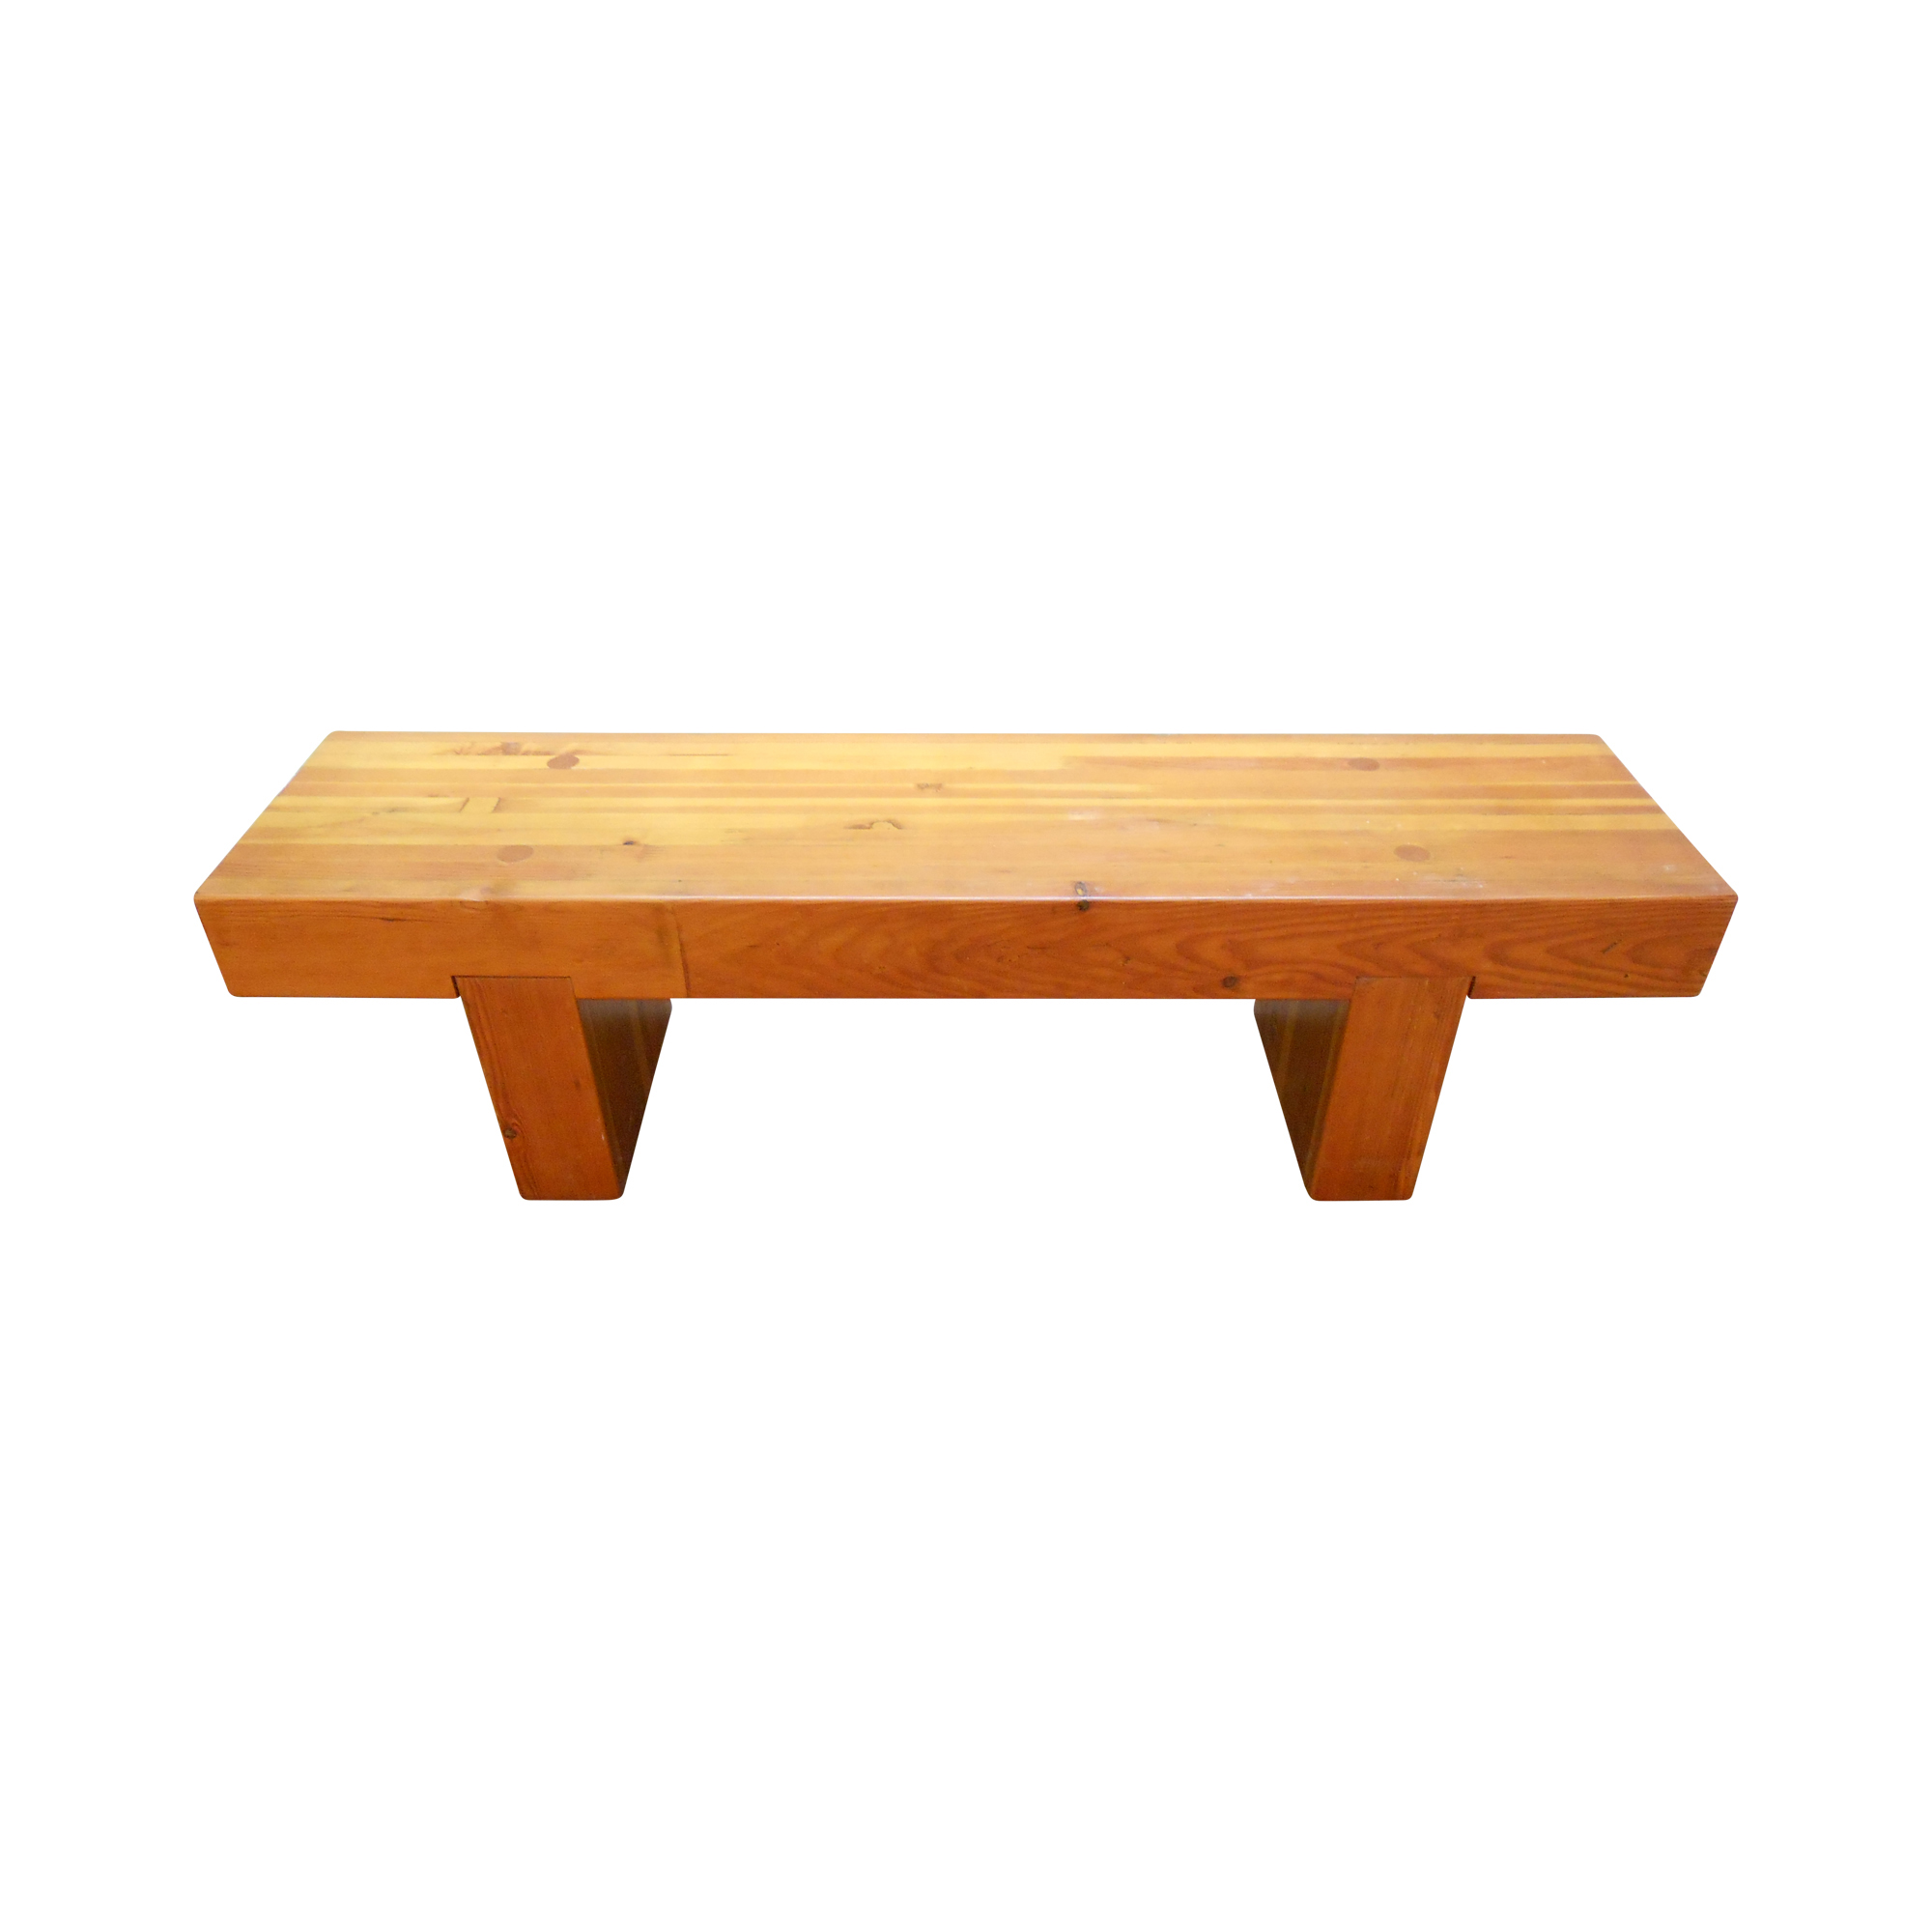 Midcentury Studio Butcher Block Coffee Table